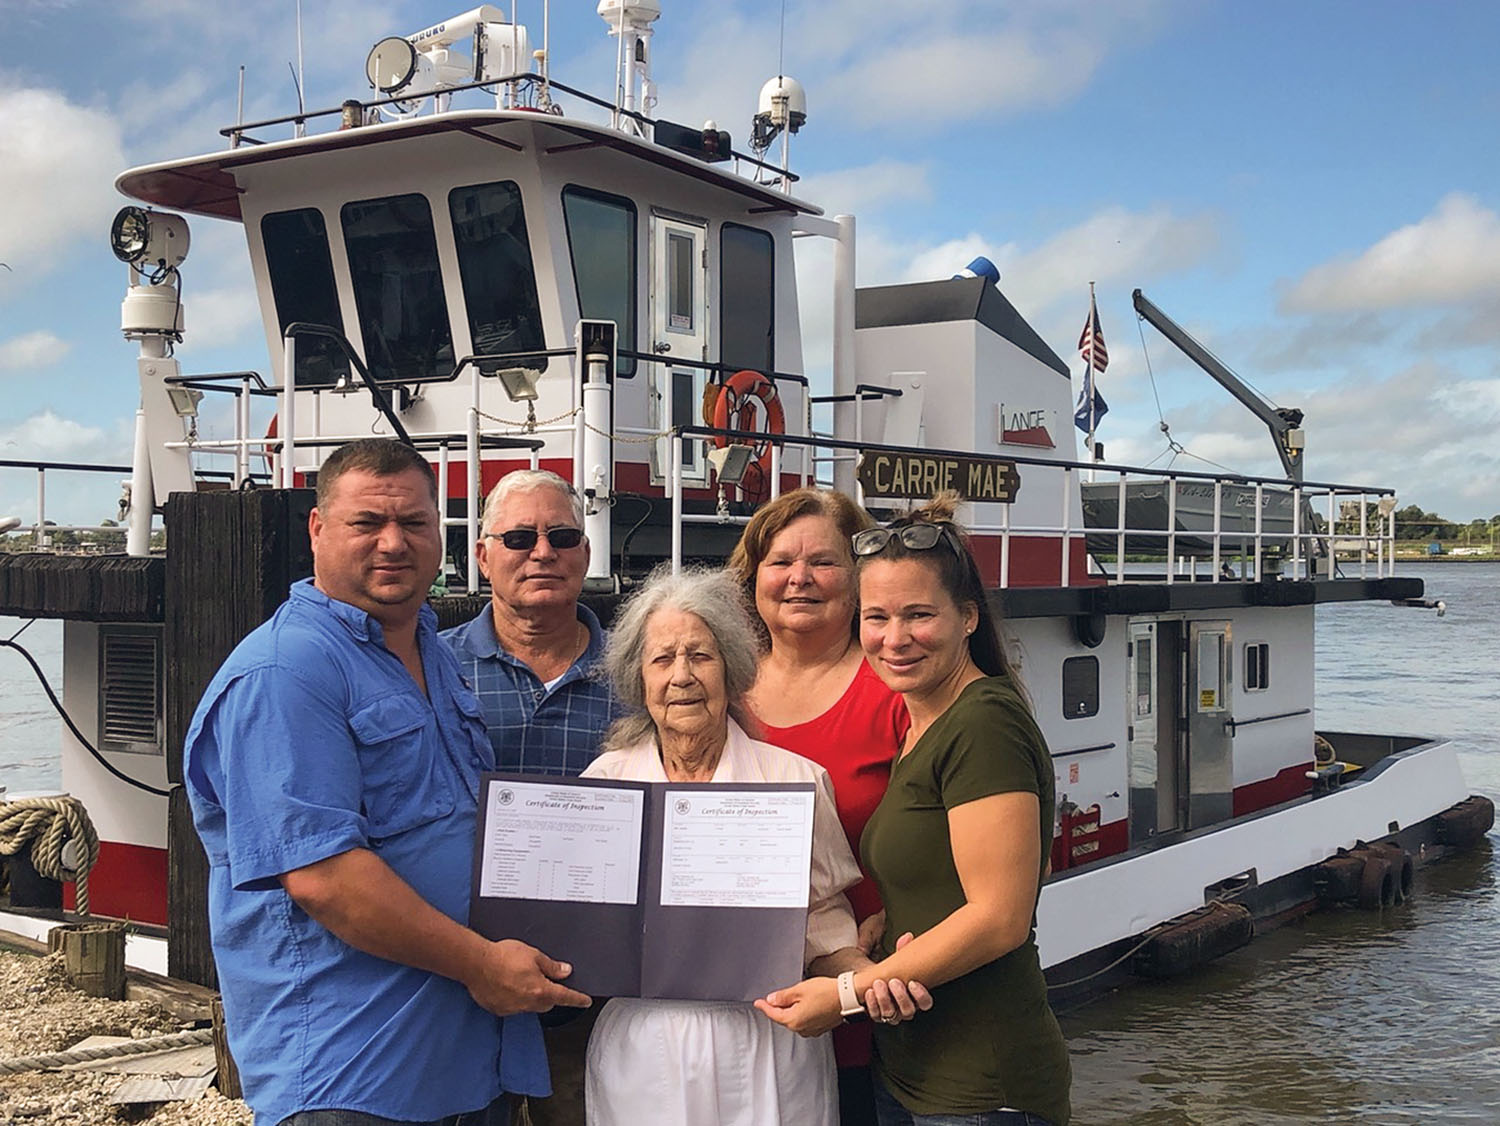 Lange Towing owner operators Capt. George Lange Jr. and George Lange Sr.; Carrie Lange, wife of the late Wilbur Lange; Daisy Lange, wife of George Lange Sr.; and KMS Safety's Kimberly Macaluso, daughter of George Lange Sr. (Photo courtesy of Lange Towing)